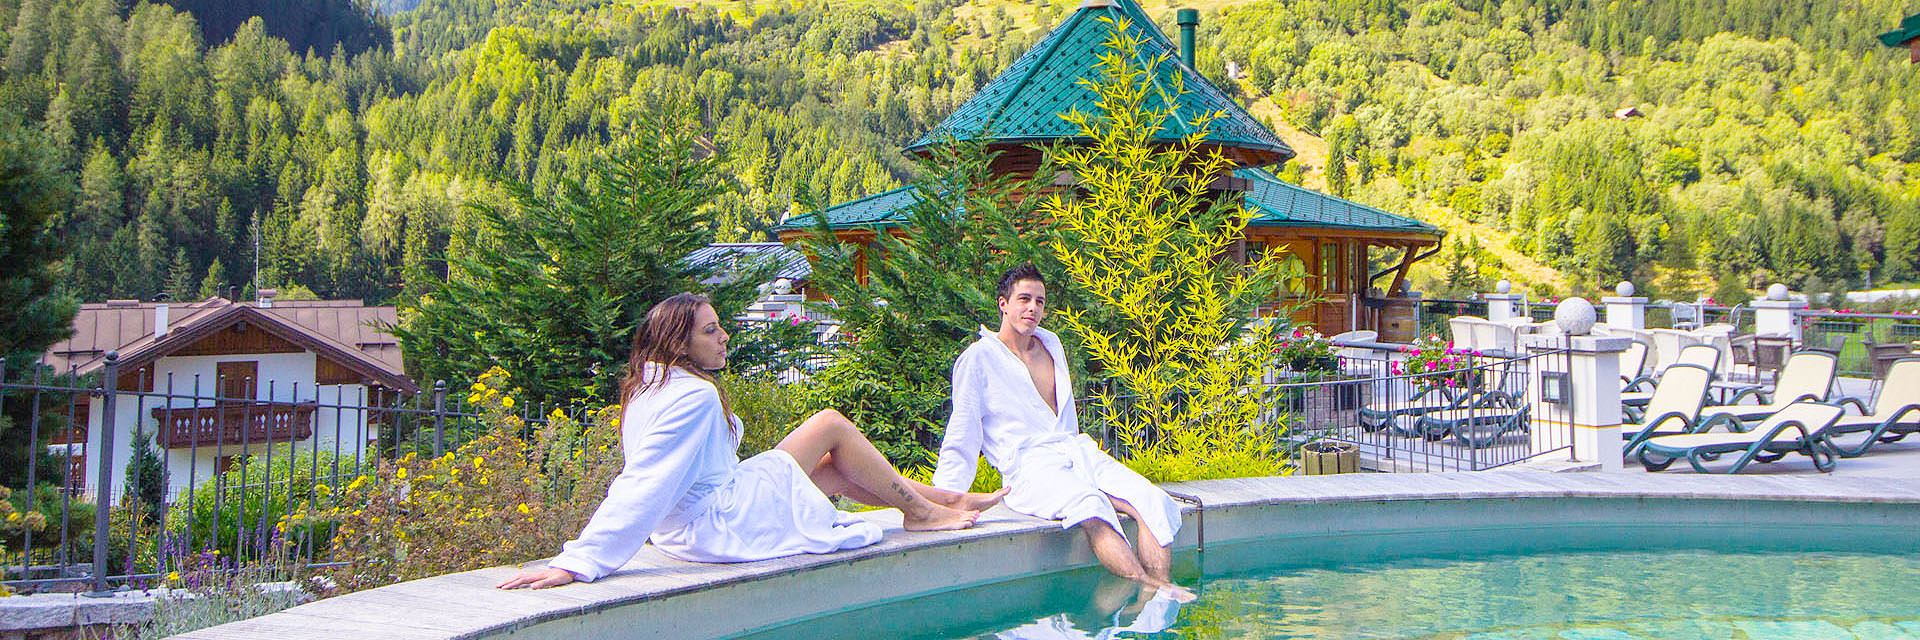 kristiania leading nature and wellness resort